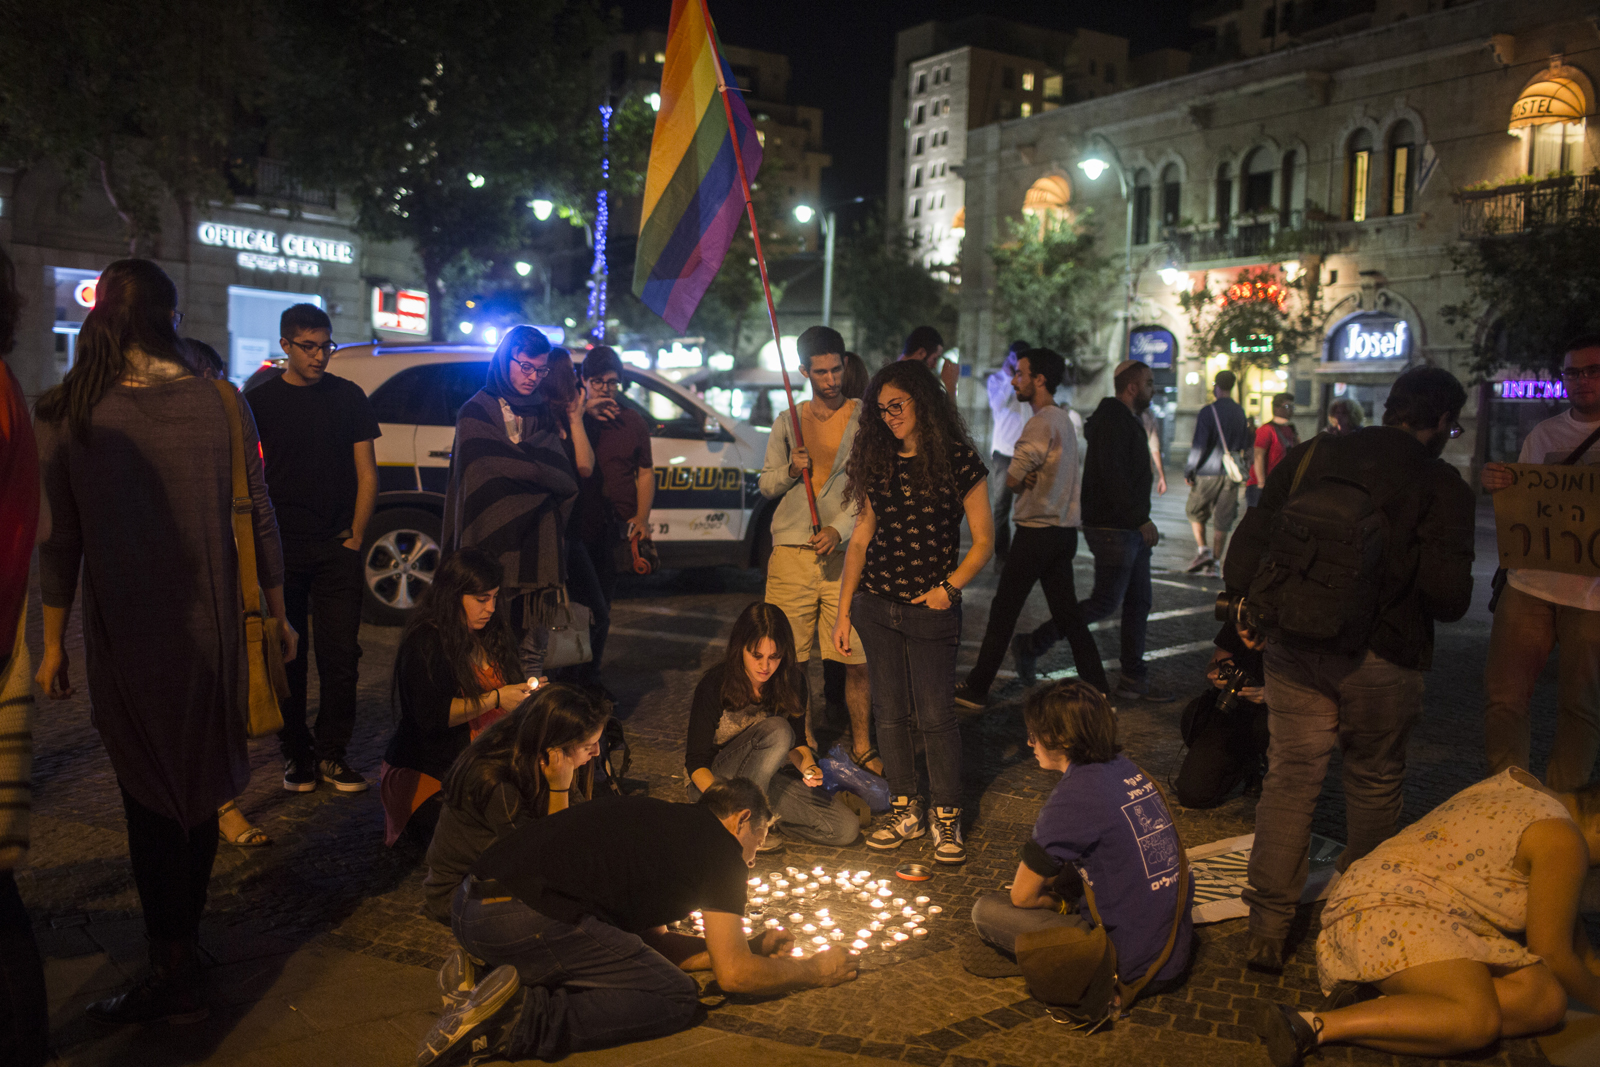 Israelis show solidarity for Pride community in Orlando. Photo by Hadas Parush/Flash90